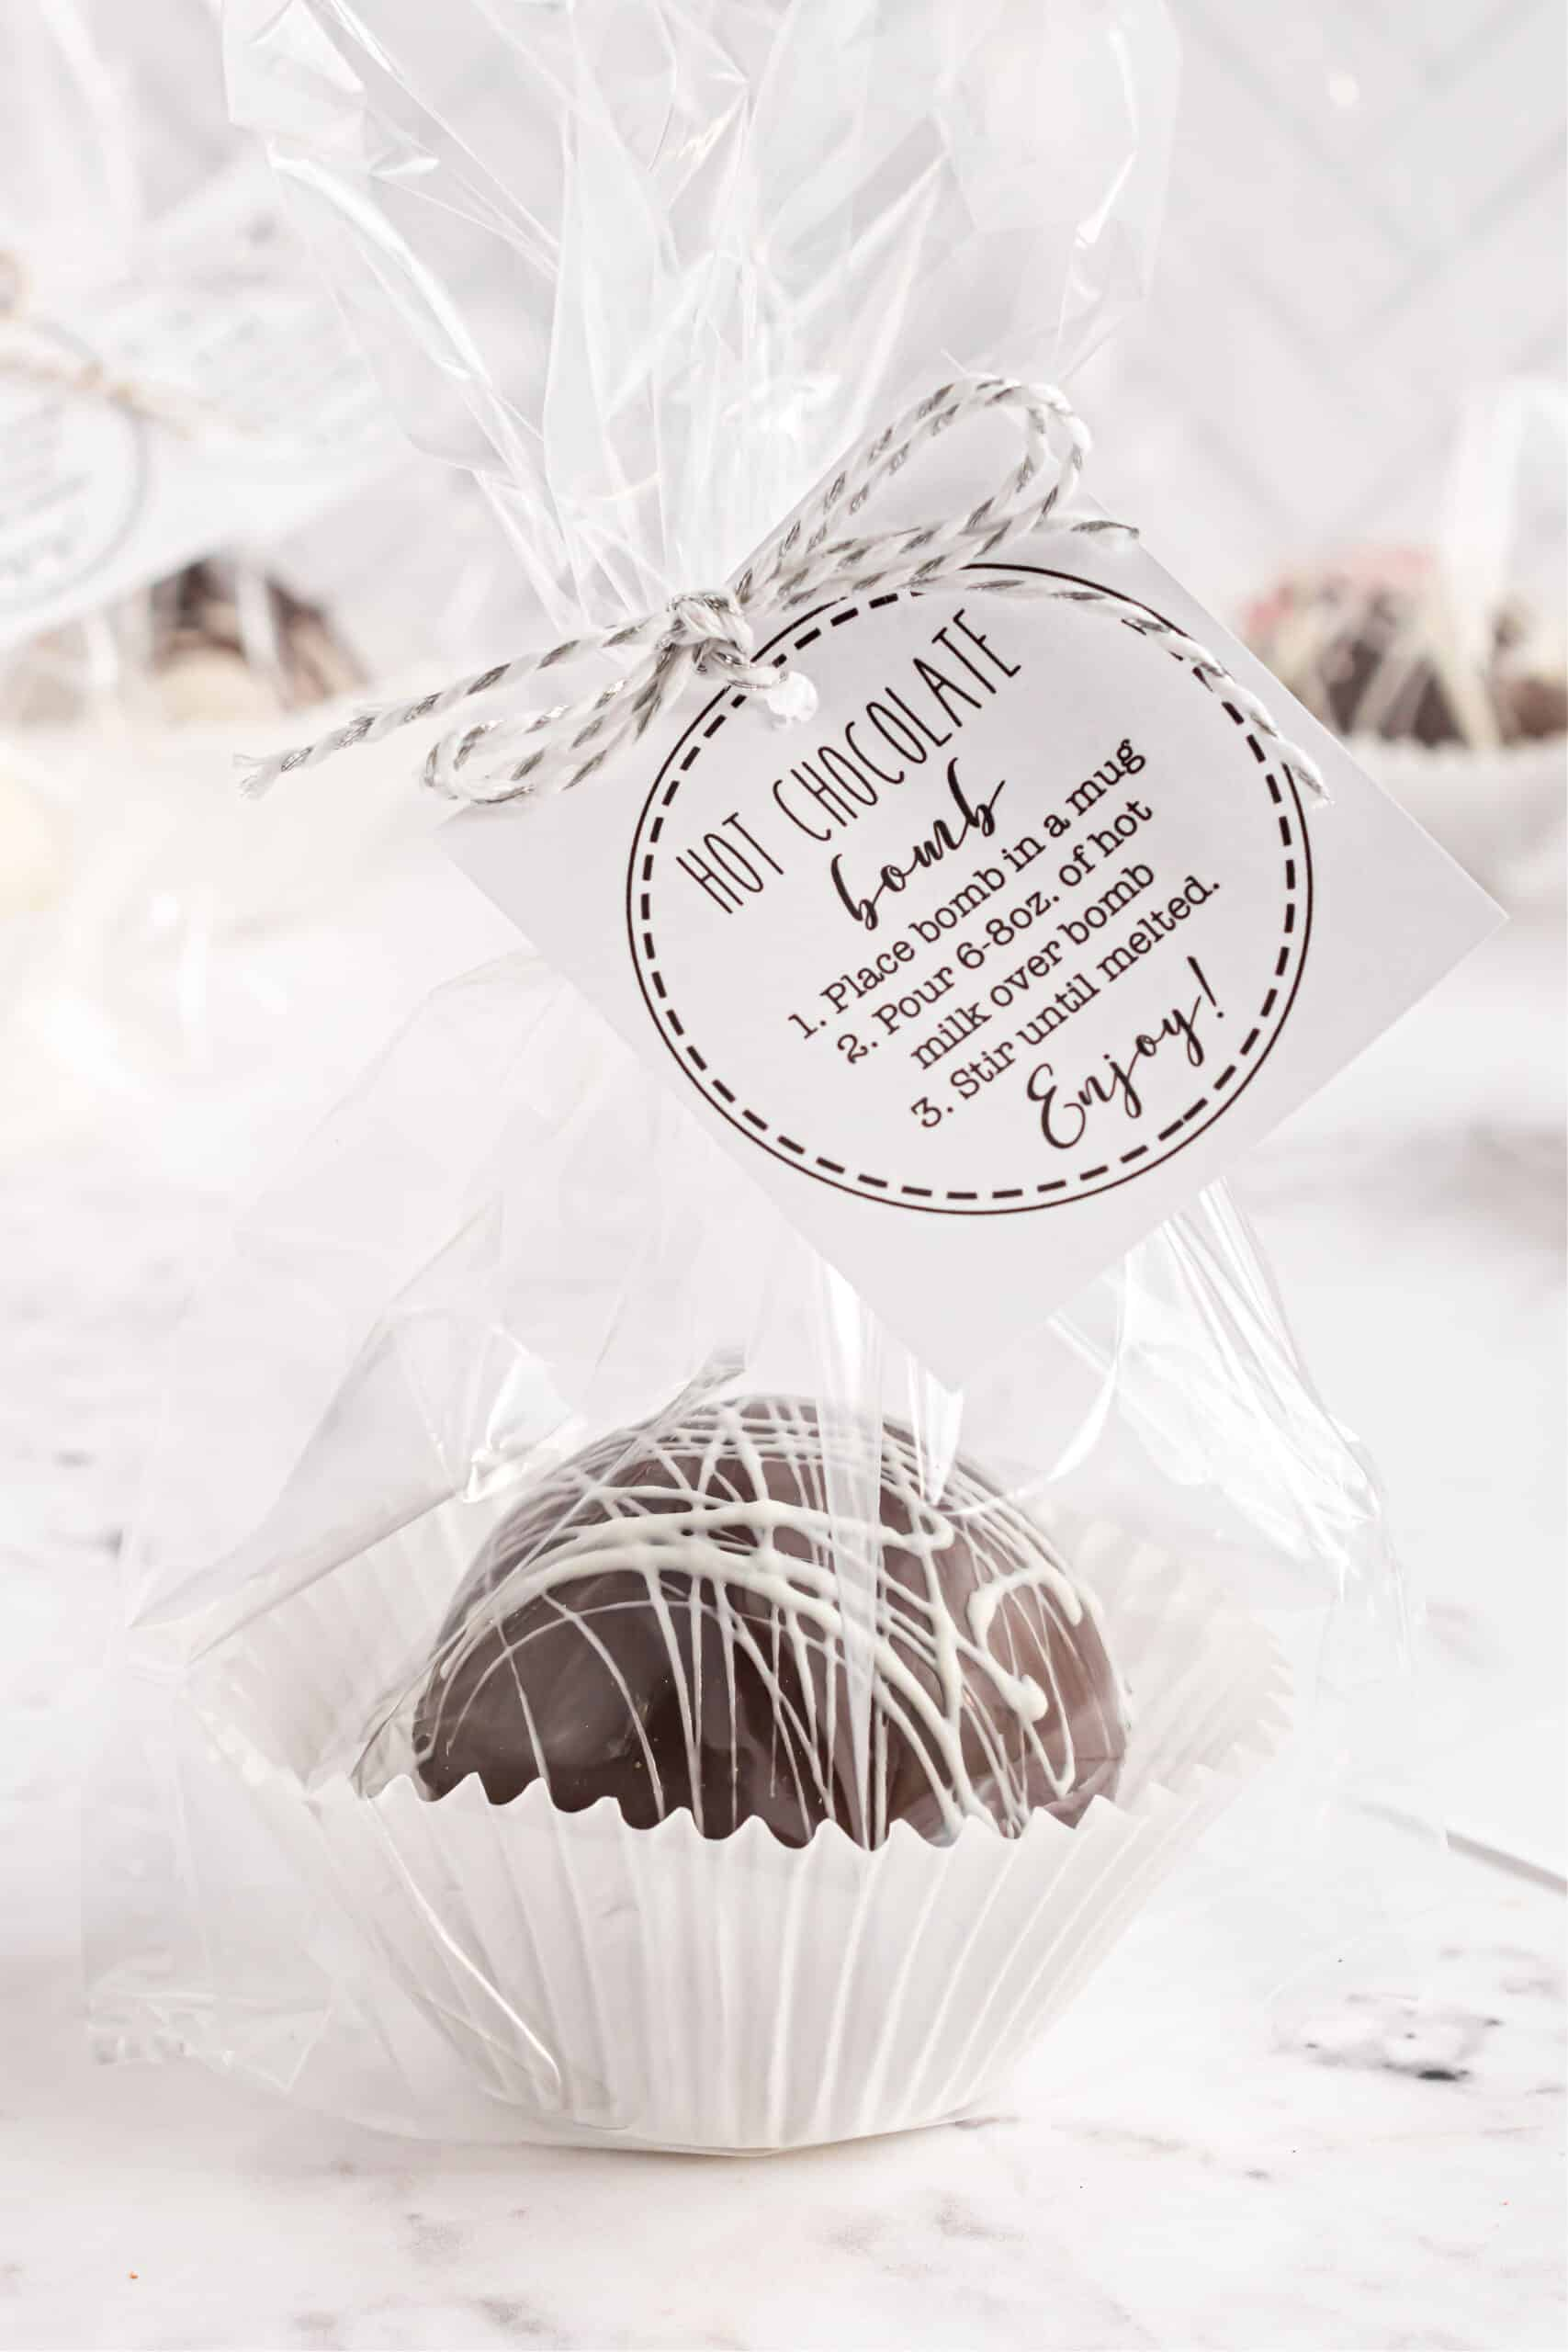 Hot chocolate bomb wrapped in clear cellophane with a tag attached.